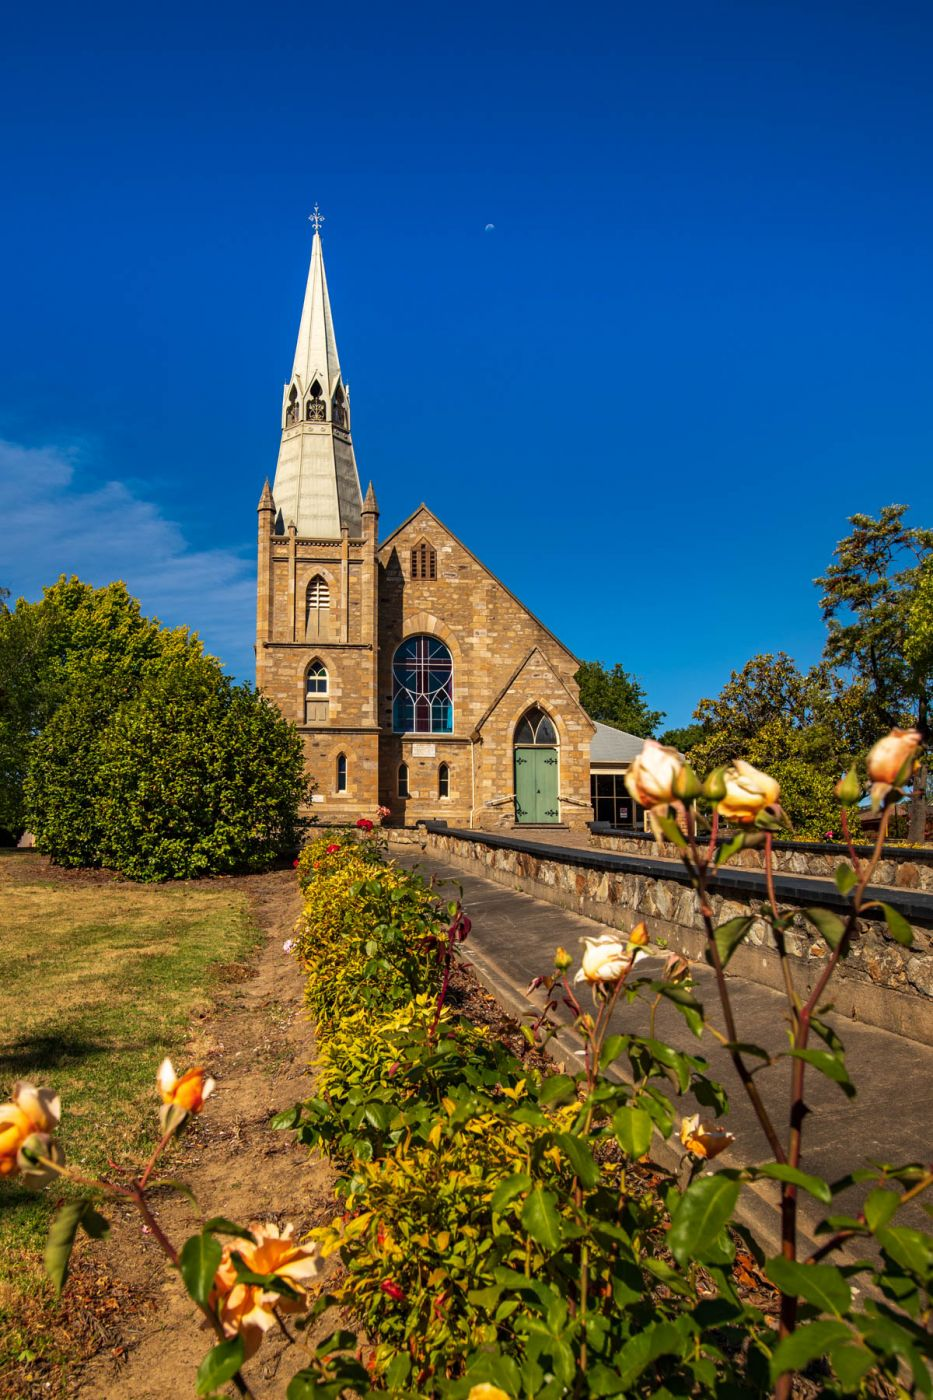 「St Paul's Lutheran Church adelaide」的圖片搜尋結果